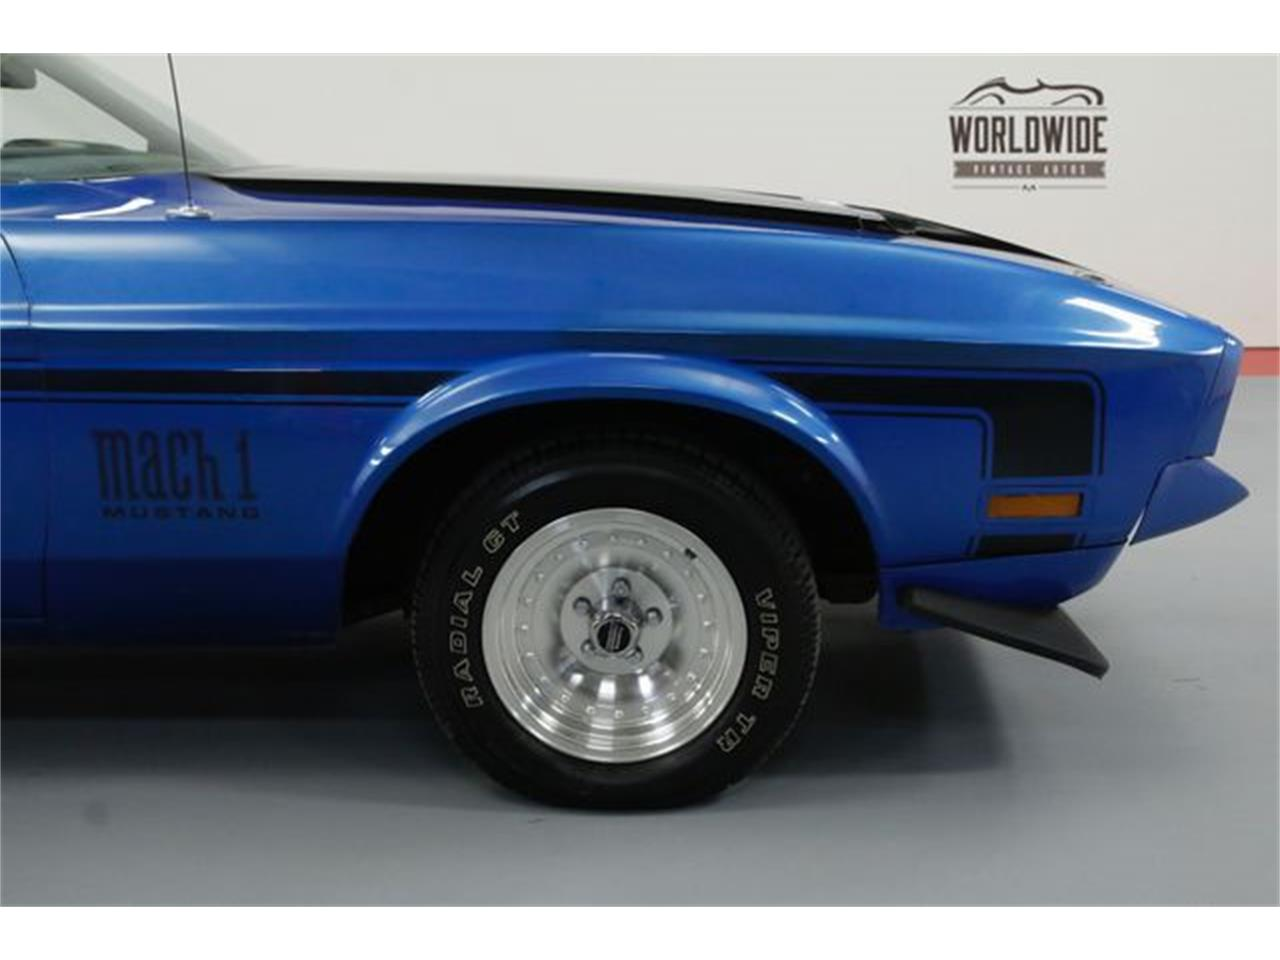 Large picture of 72 mustang mach 1 ngwi